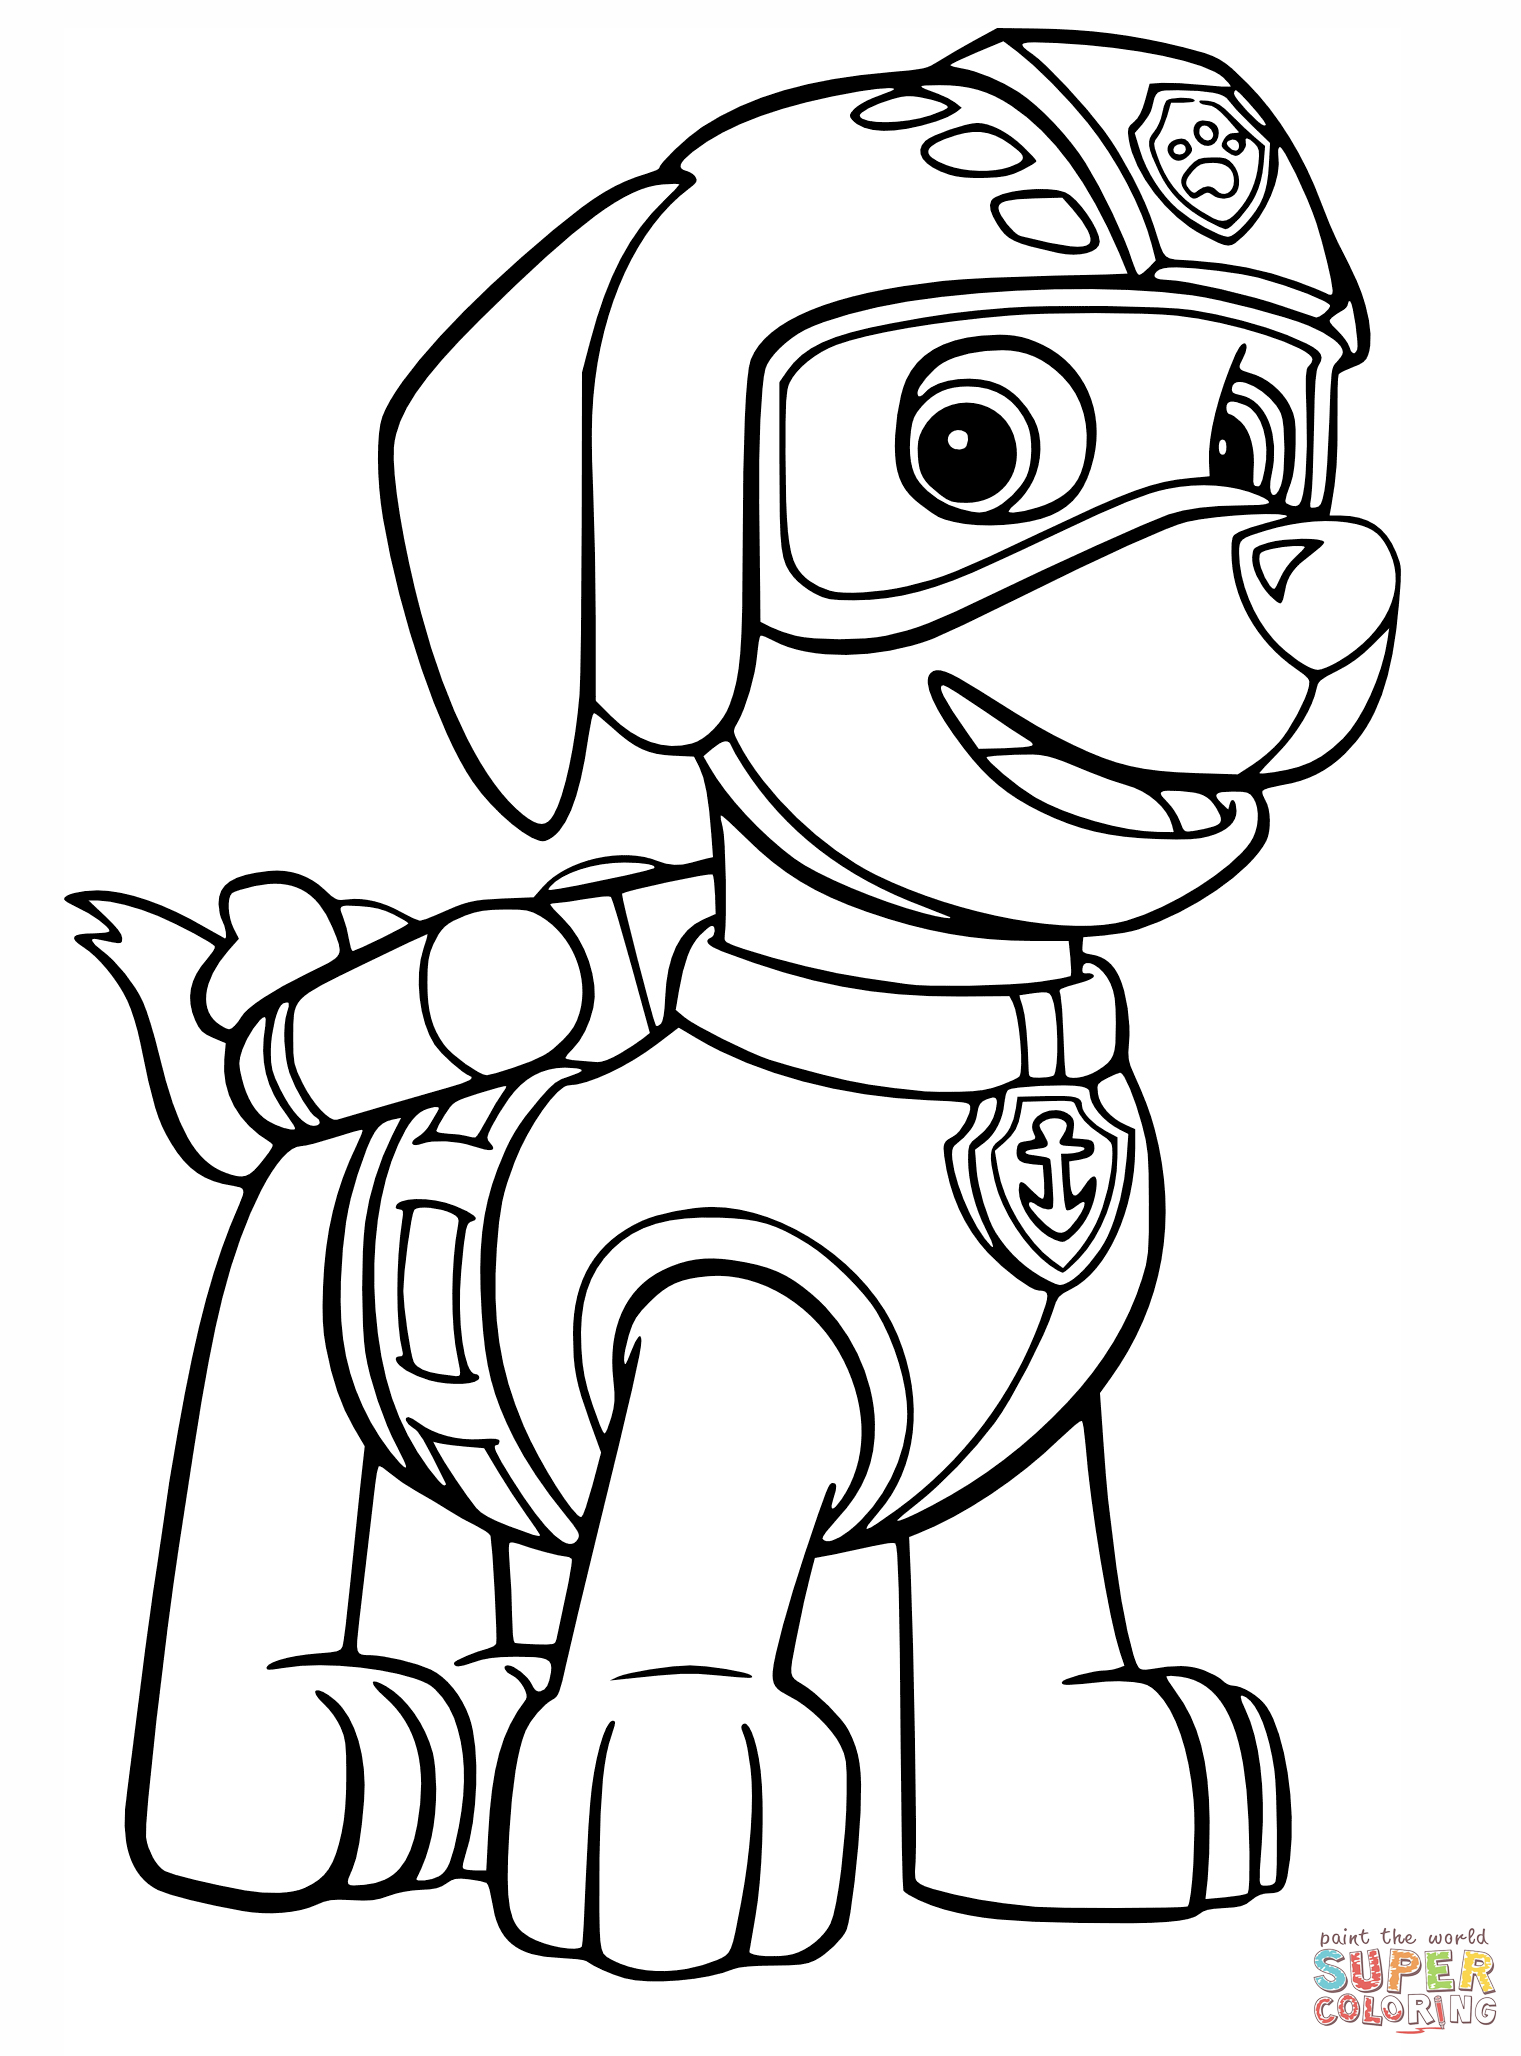 Paw Patrol Everest Ausmalbilder : Pin By Kelly Killen On Paw Patrol Pinterest Paw Patrol Coloring